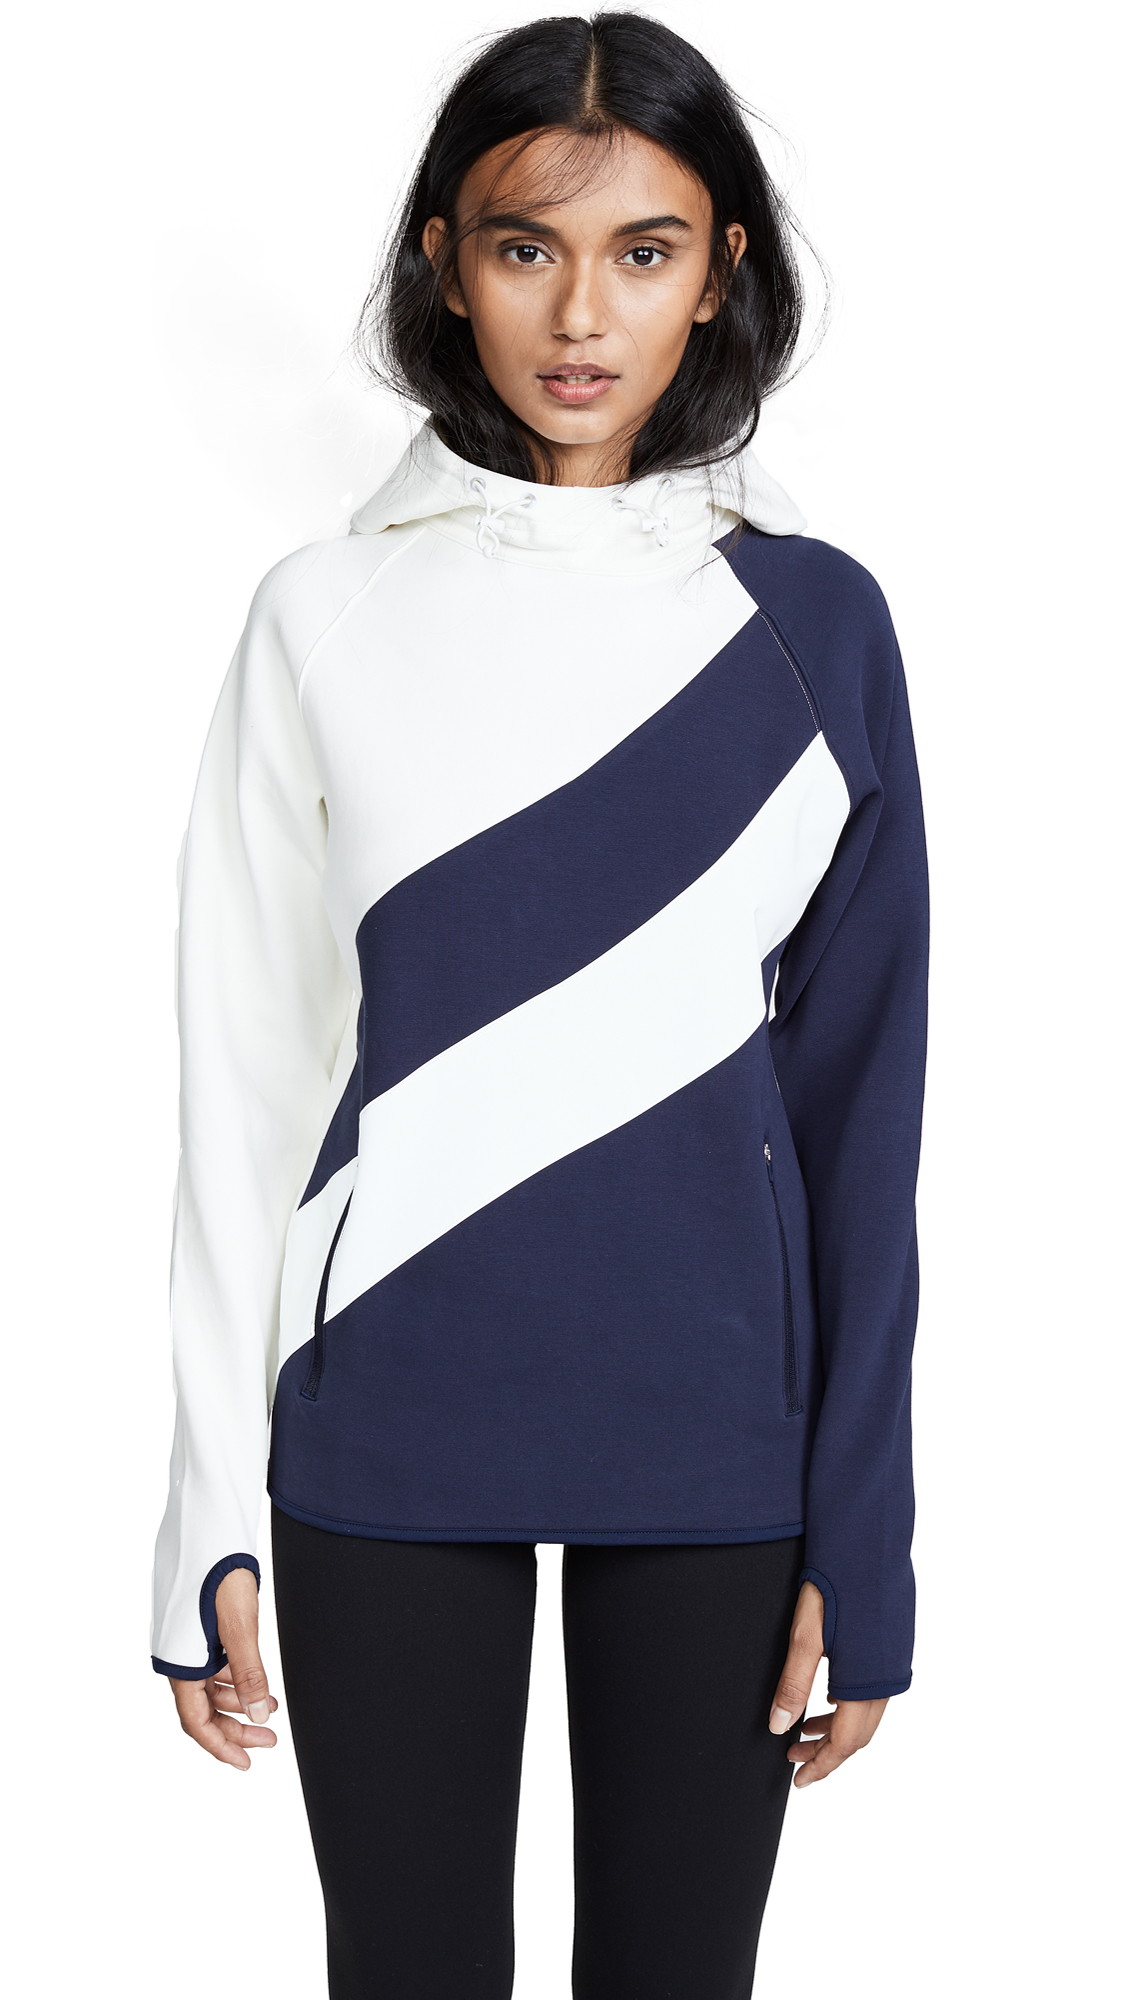 Tory Sport Reflective Performance Hoodie - Tory Navy